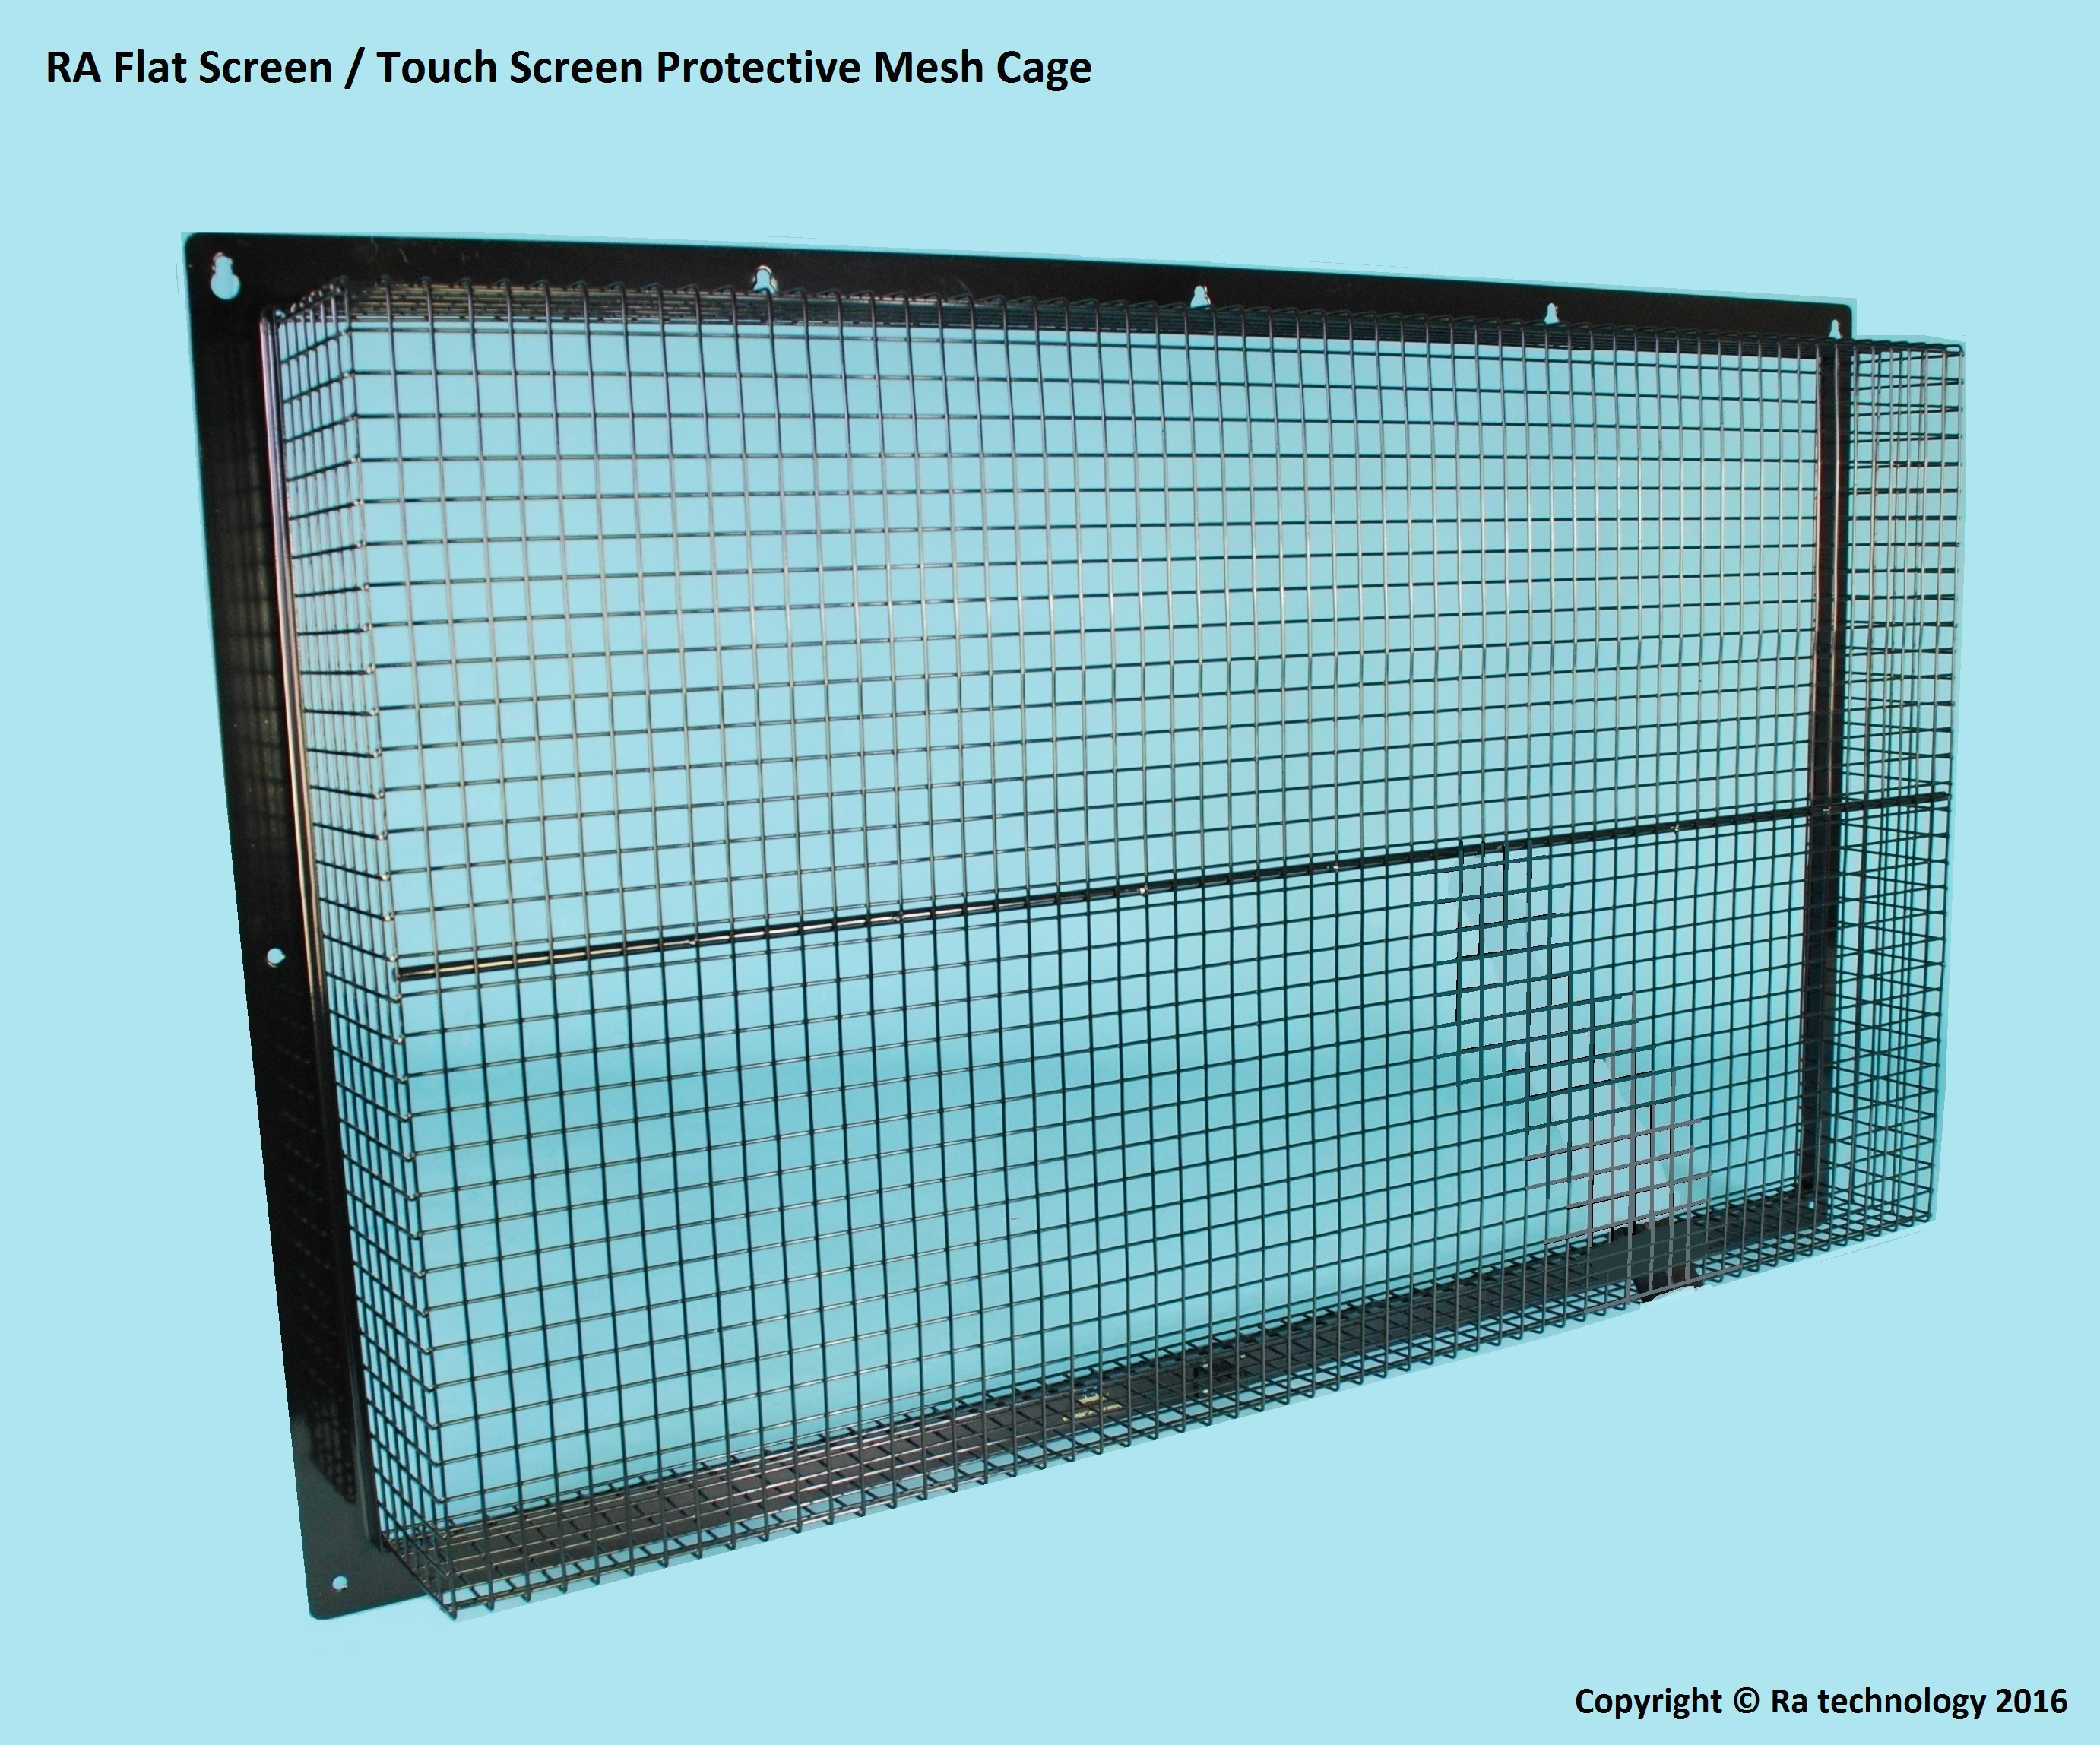 RA Mesh Cage For Wall Mounted Flat Screens